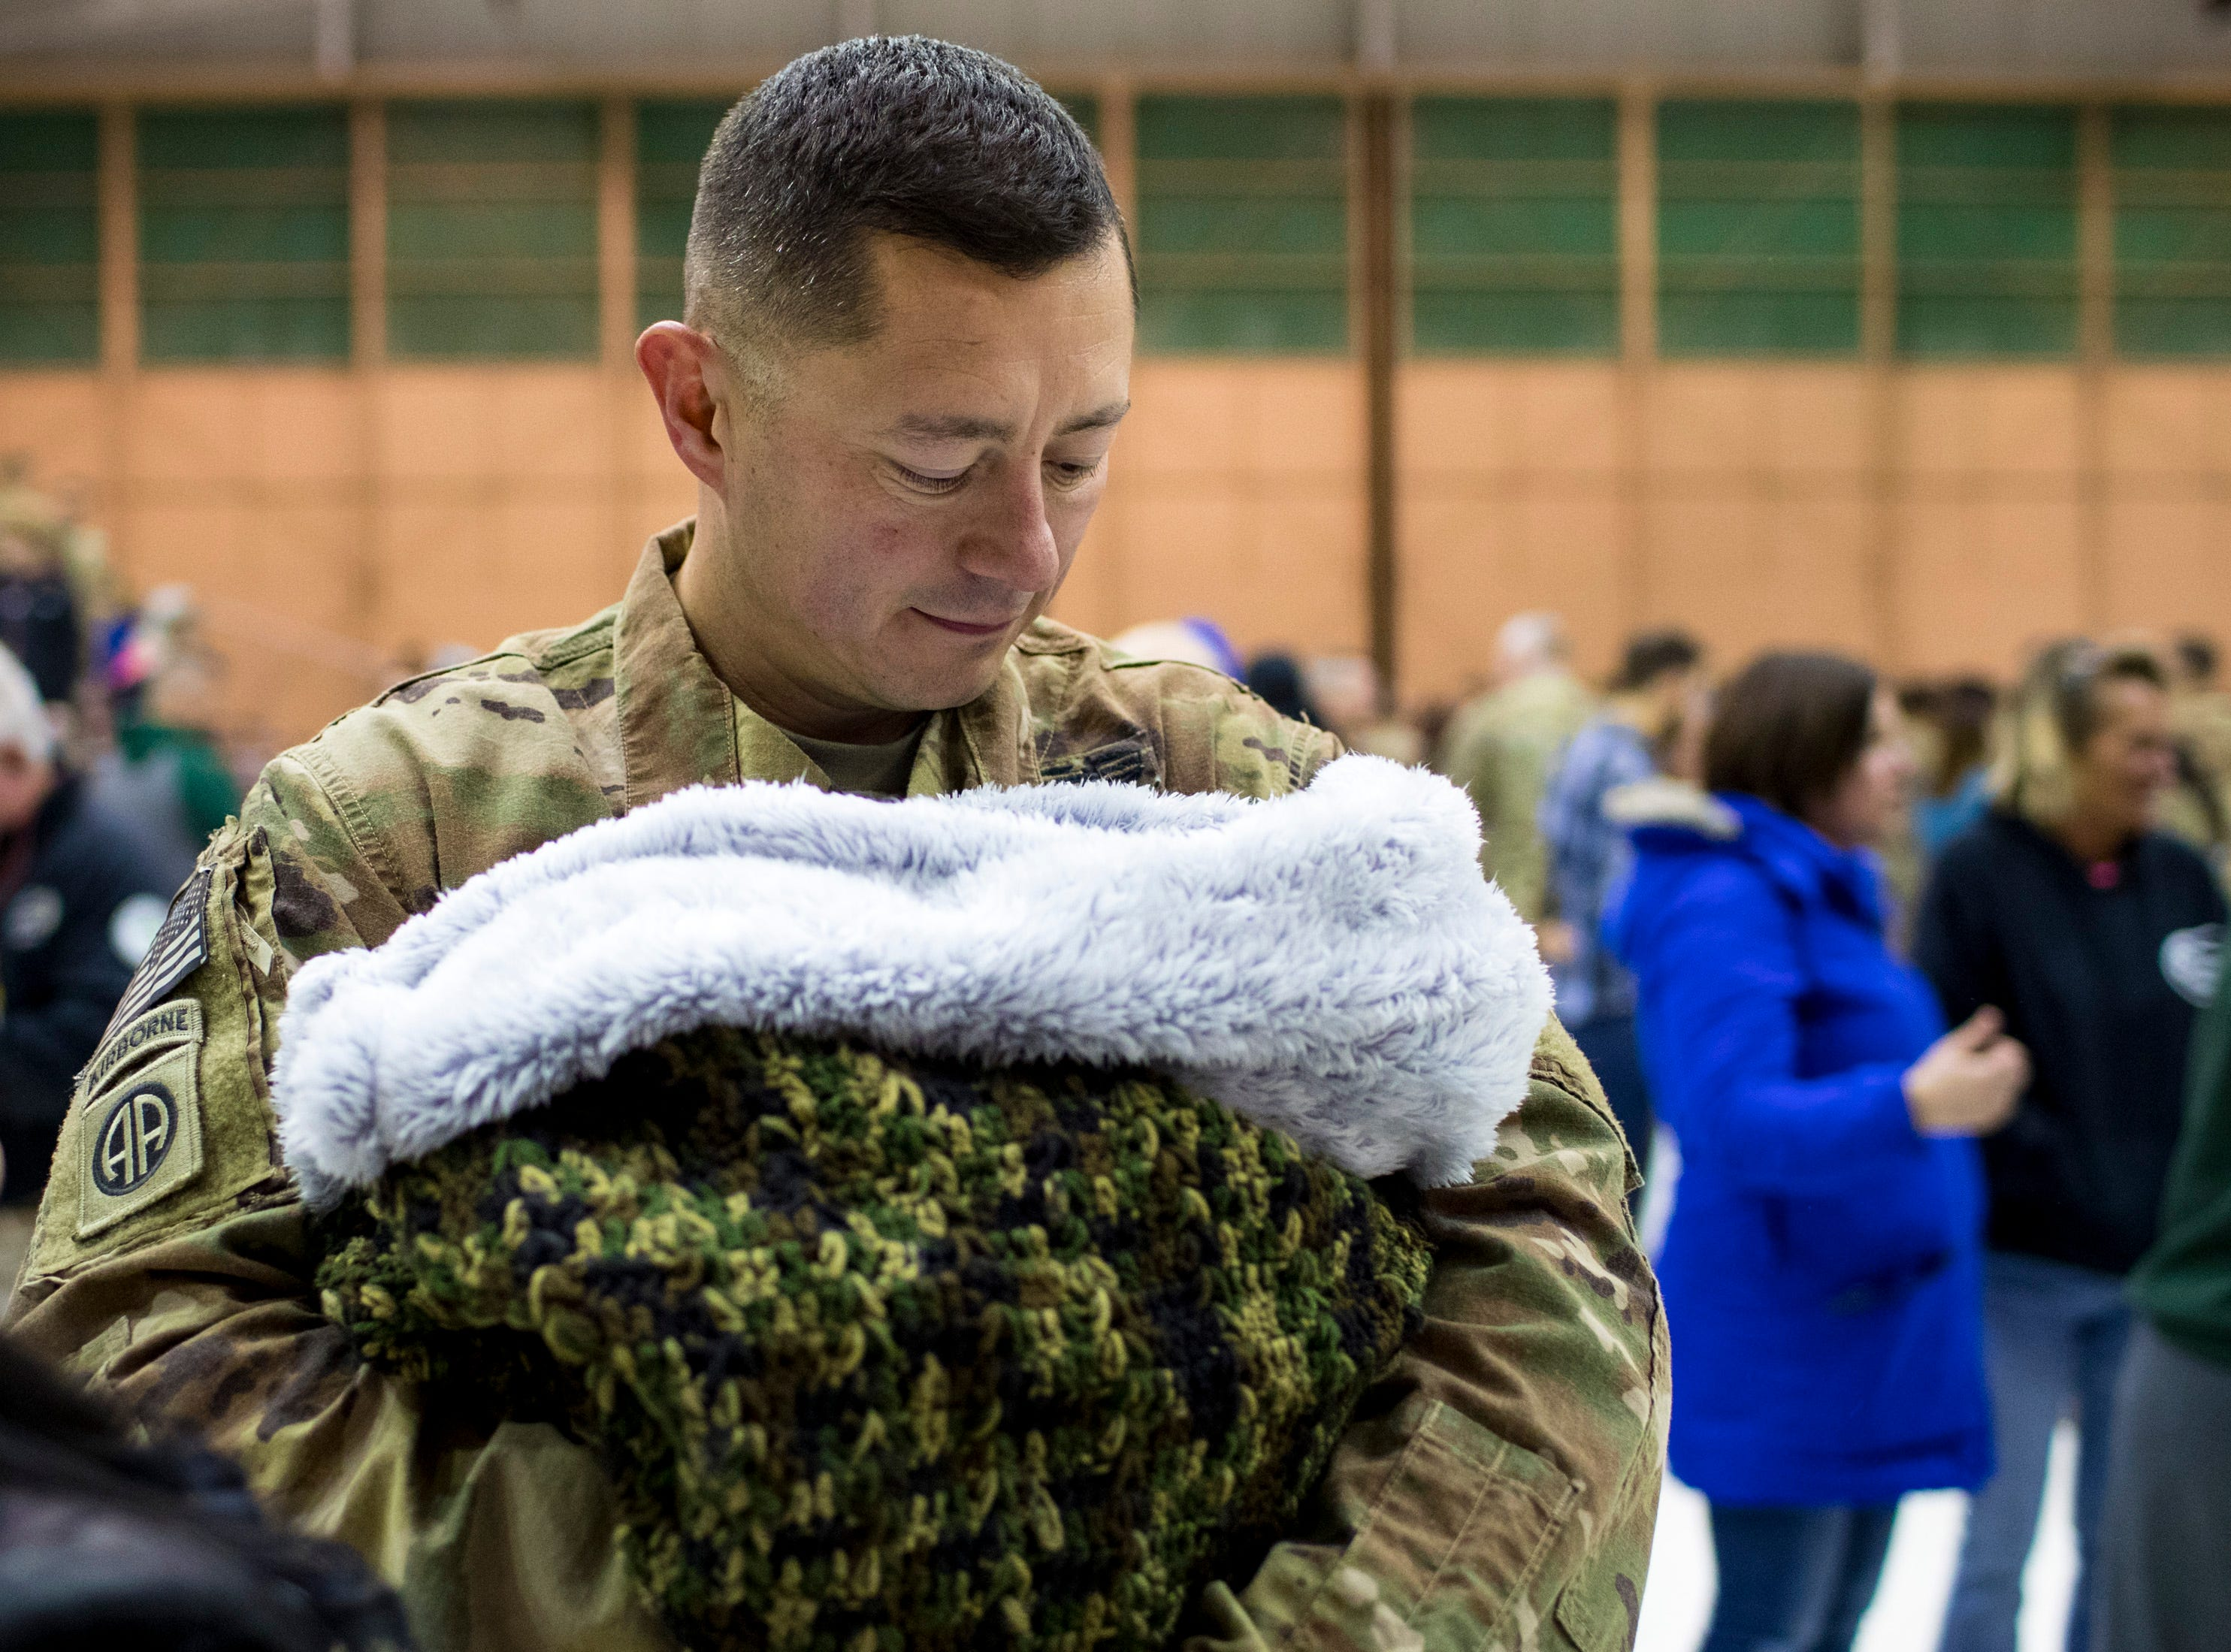 Sgt. Major Kevin Peterson holds his newborn son, Logan Grey Peterson, 1 week, for the first time, during the welcome home ceremony for the 2nd Battalion, 44th Air Defense Artillery Regiment and 101st Airborne Division at Fort Campbell in the early hours of Monday, Nov. 19, 2018. The soldiers were returning from a 9-month deployment in Afghanistan.